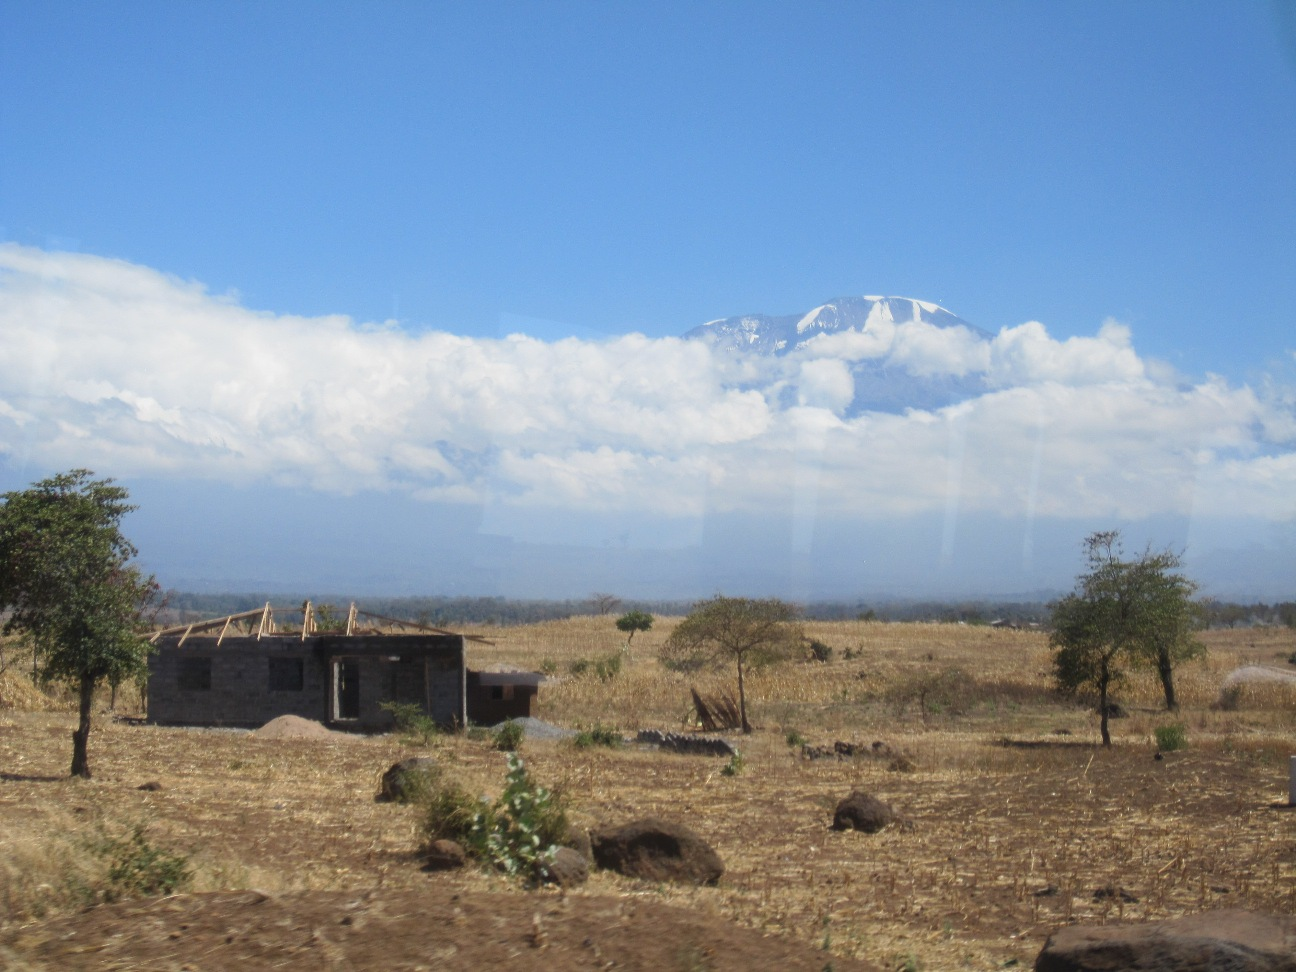 Kilimanjaro - the closest we came